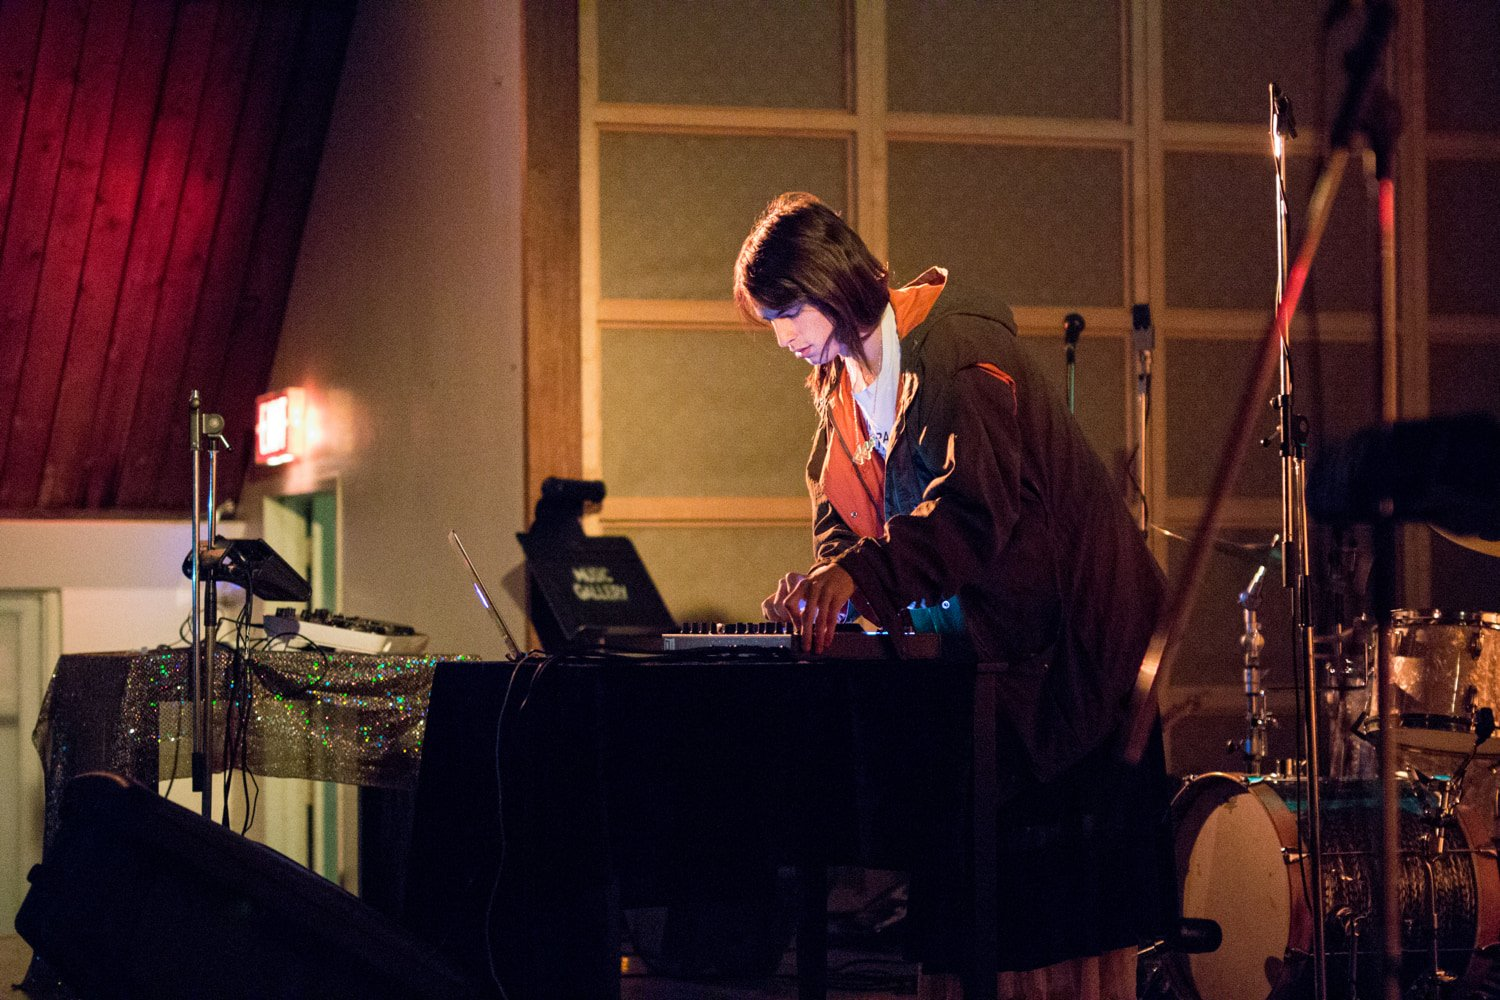 A musician works with a laptop and electronics while standing on stage.